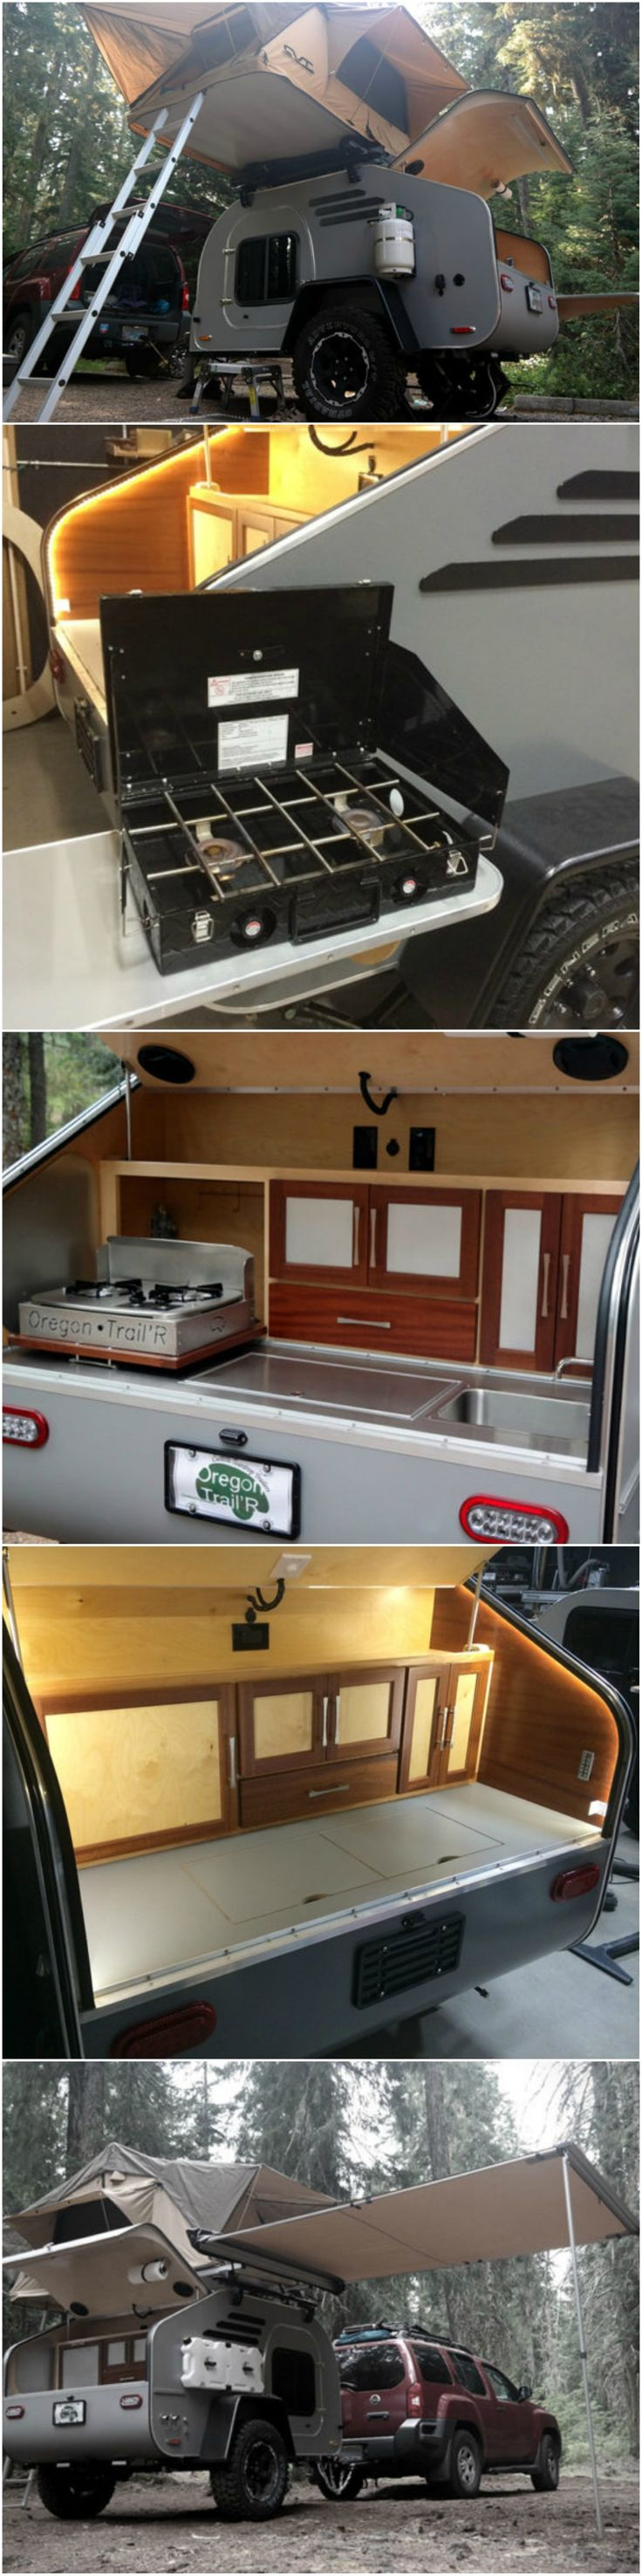 TerraDrop Off-Road Camper Trailer